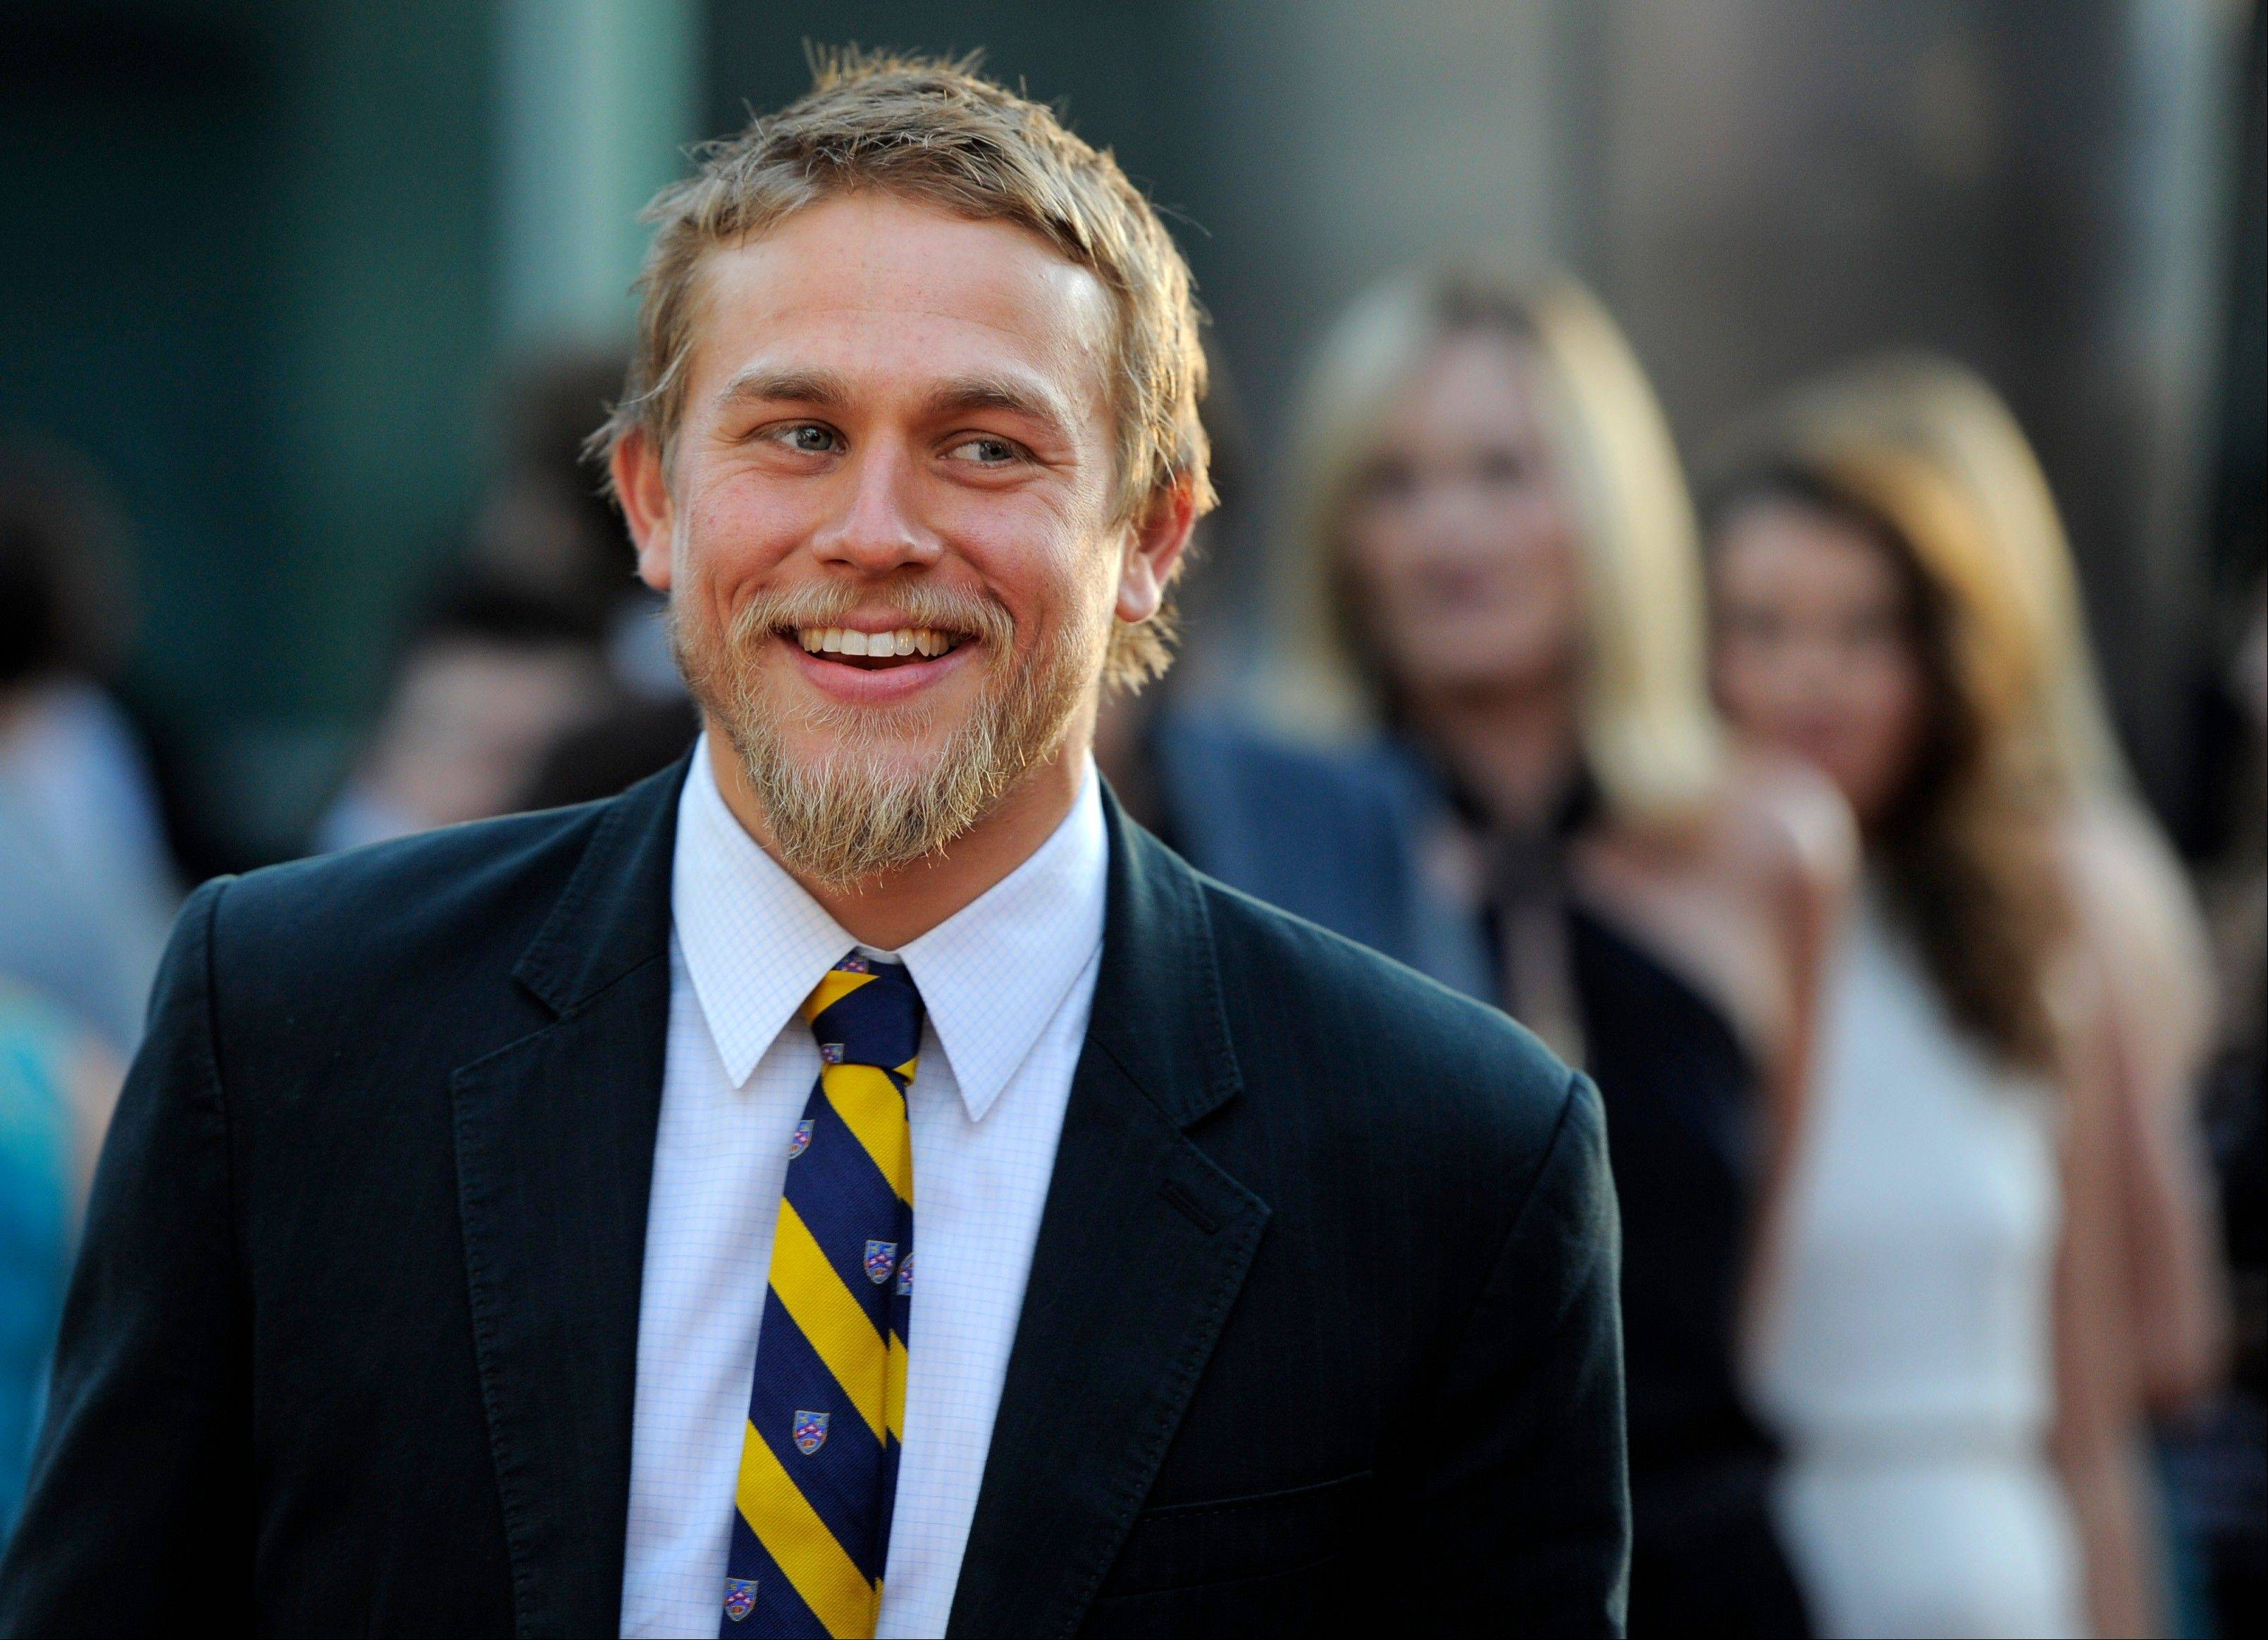 �Sons of Anarchy� star Charlie Hunnam will play Christian Grey in the movie adaptation of E L James� �Fifty Shades of Grey.�